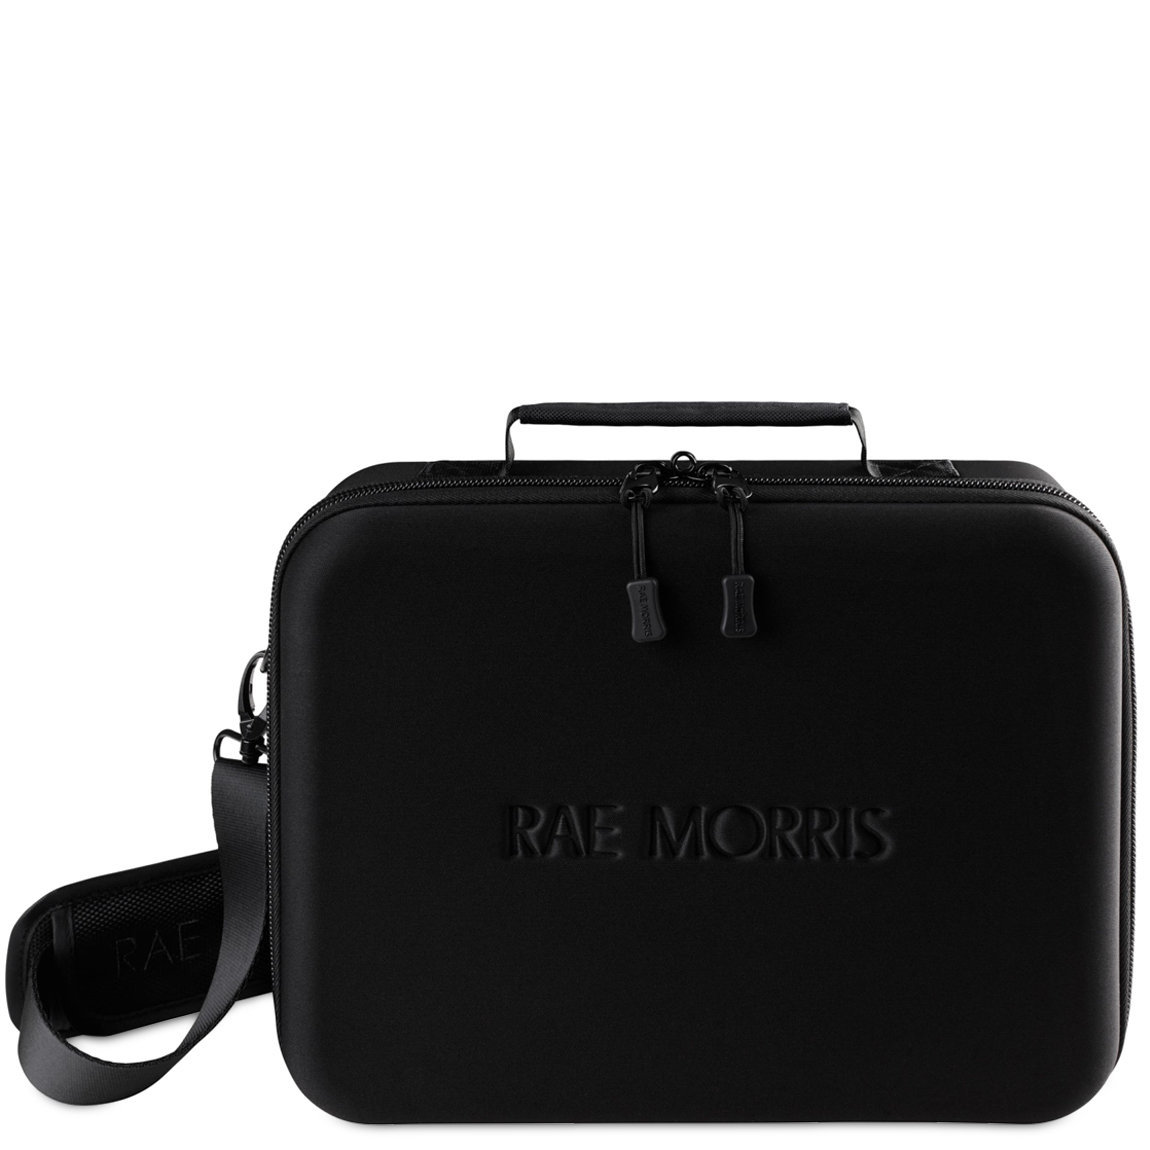 Rae Morris Travel Case alternative view 1 - product swatch.